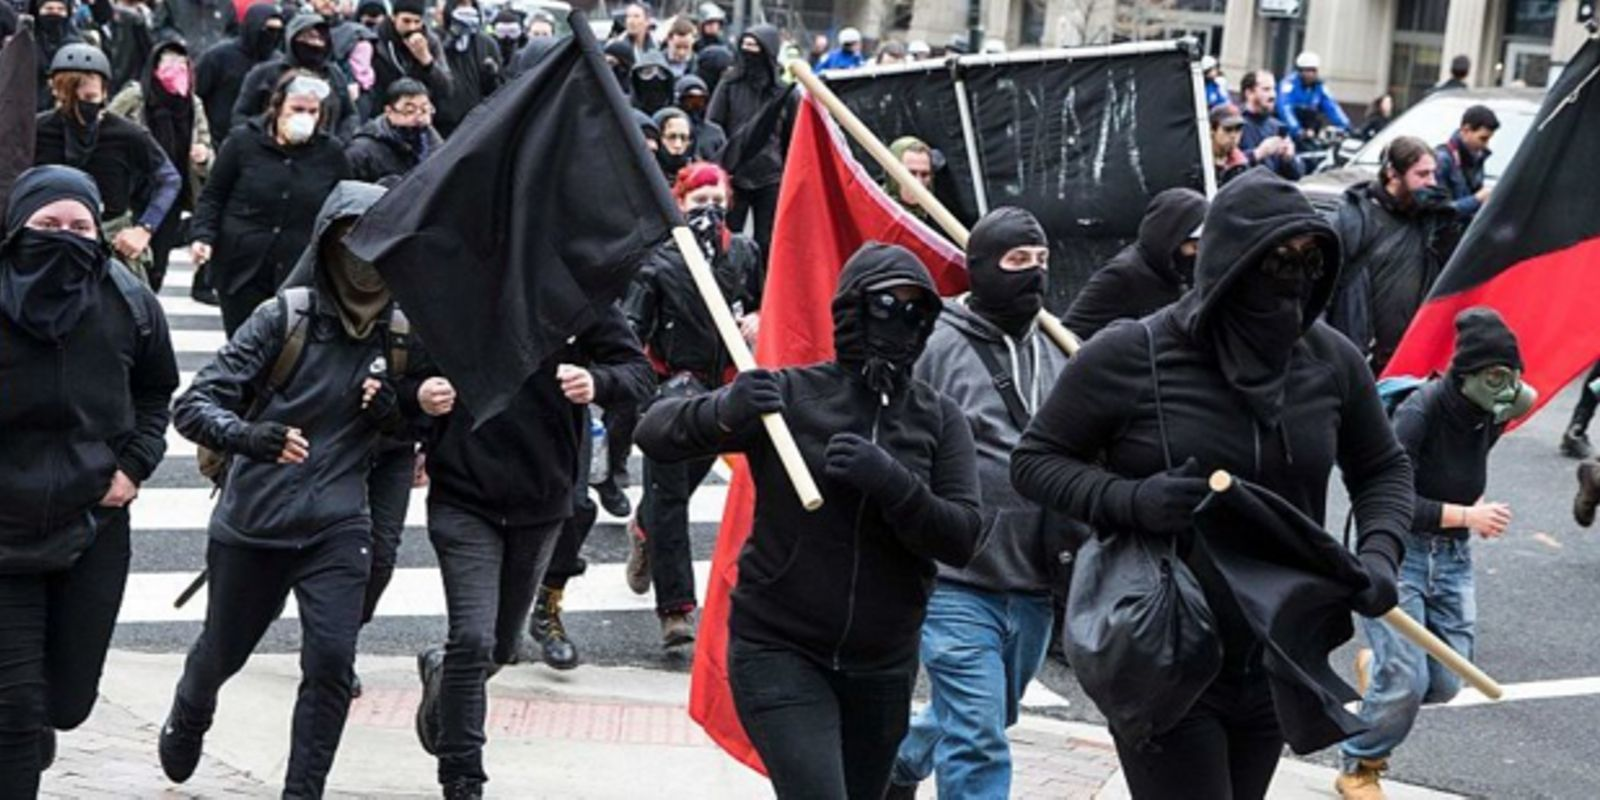 POLL: An increasing number of liberals believe political violence is 'justified'